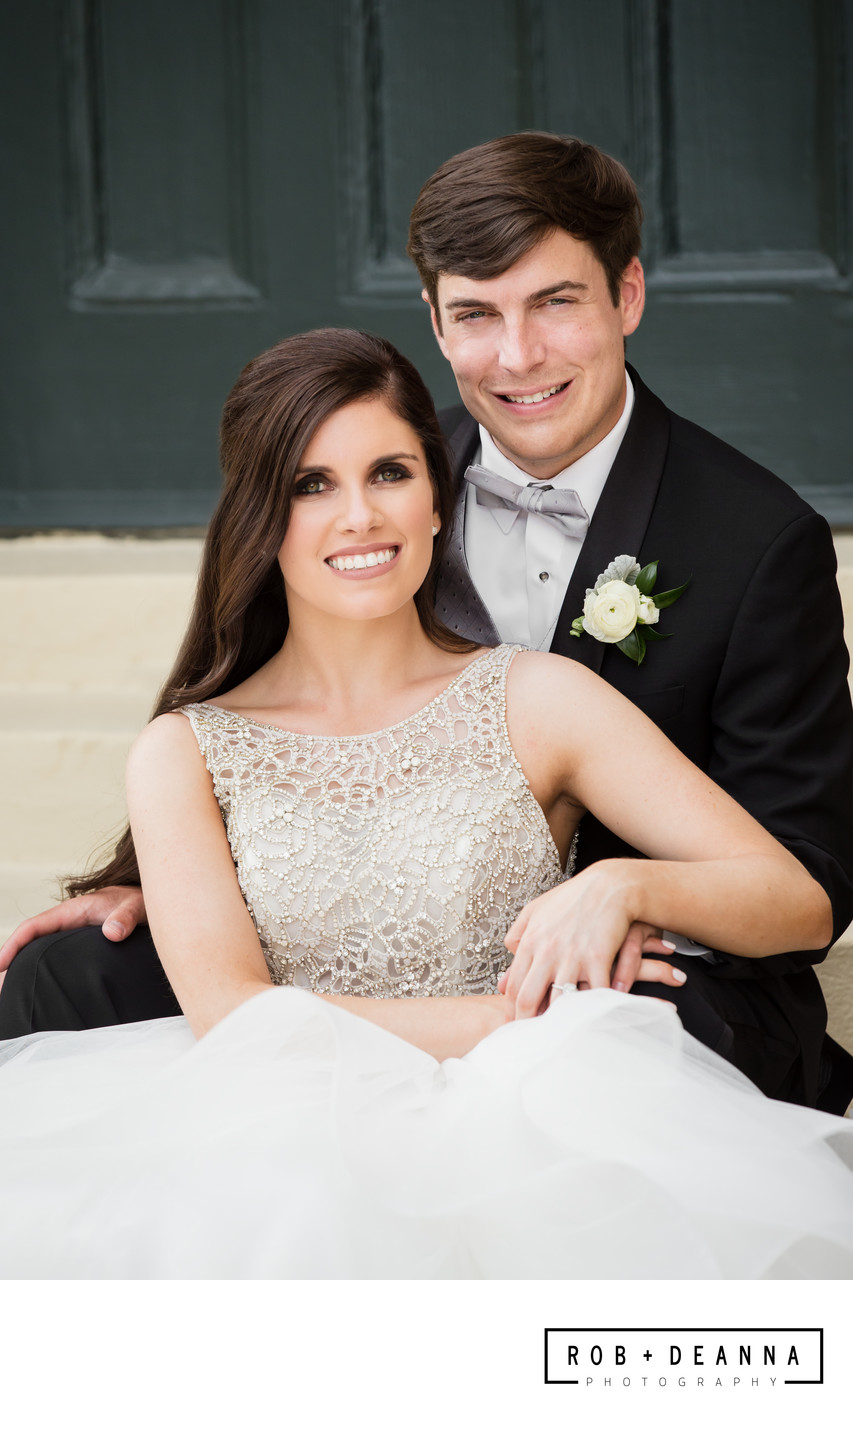 Memphis Wedding Photographer Bride Groom Portrait